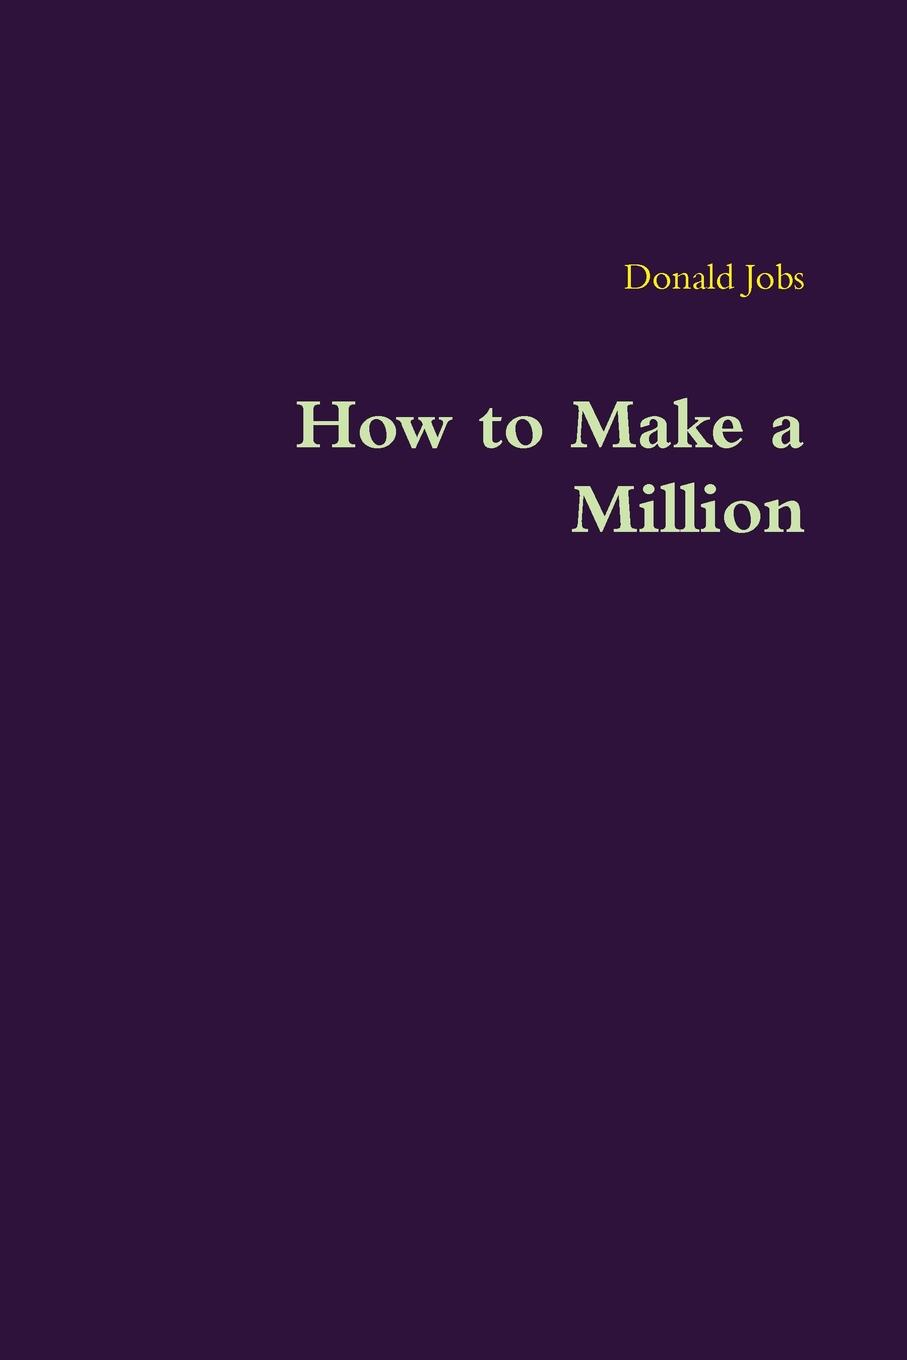 Donald Jobs How to Make a Million